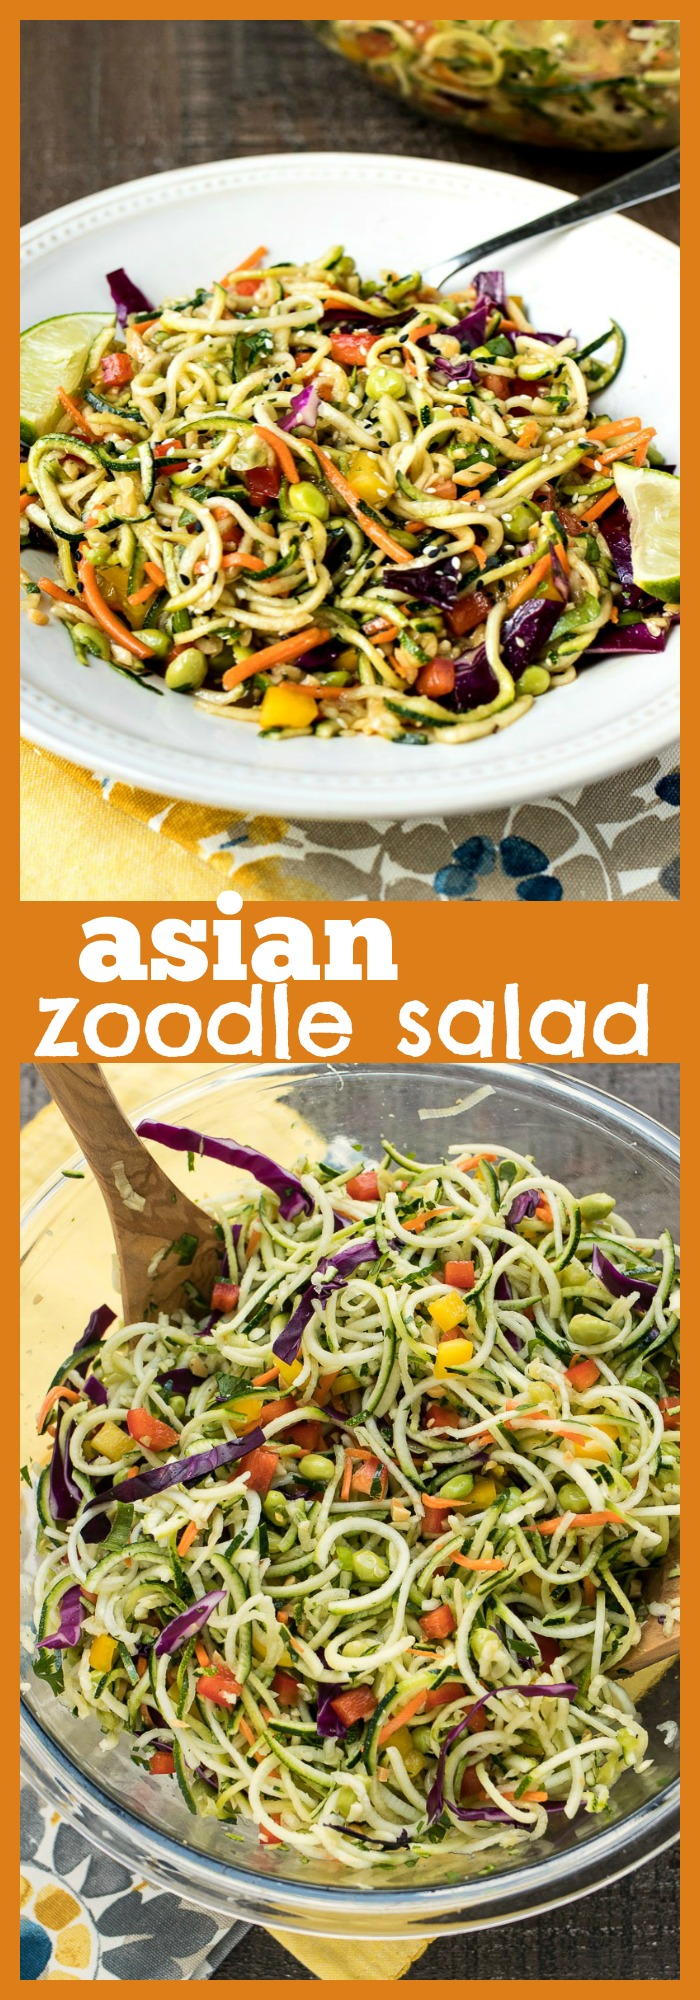 Asian Zoodle Salad photo collage